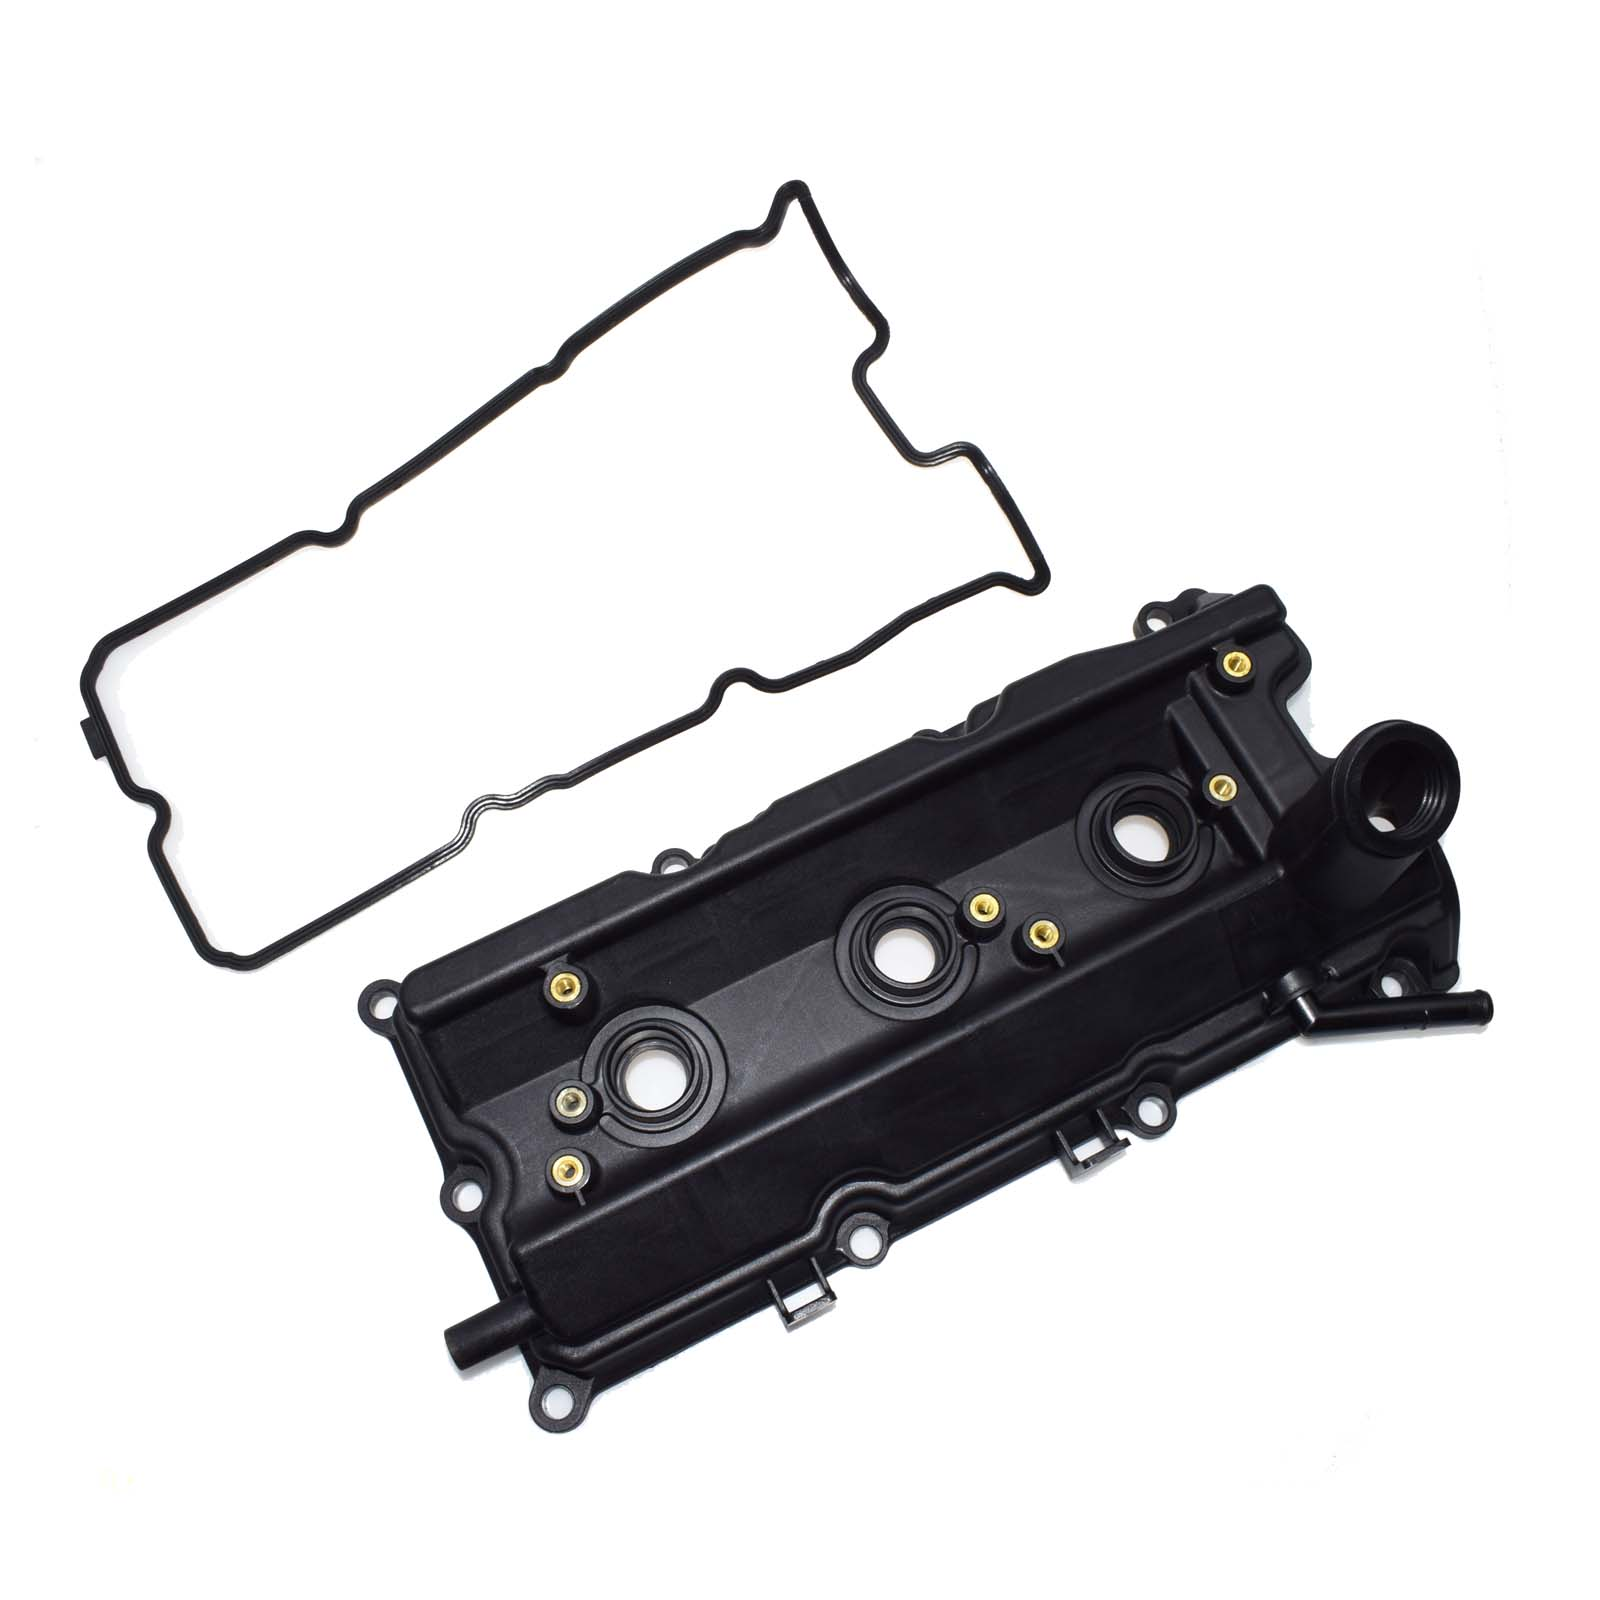 23afd360593 WOLFIGO Driver Left Valve Cover with Gasket 13264 AM610 13264 AM600 For  2003 2006 Nissan Infiniti FX35 G35 M35 350Z-in Valve Covers from  Automobiles ...